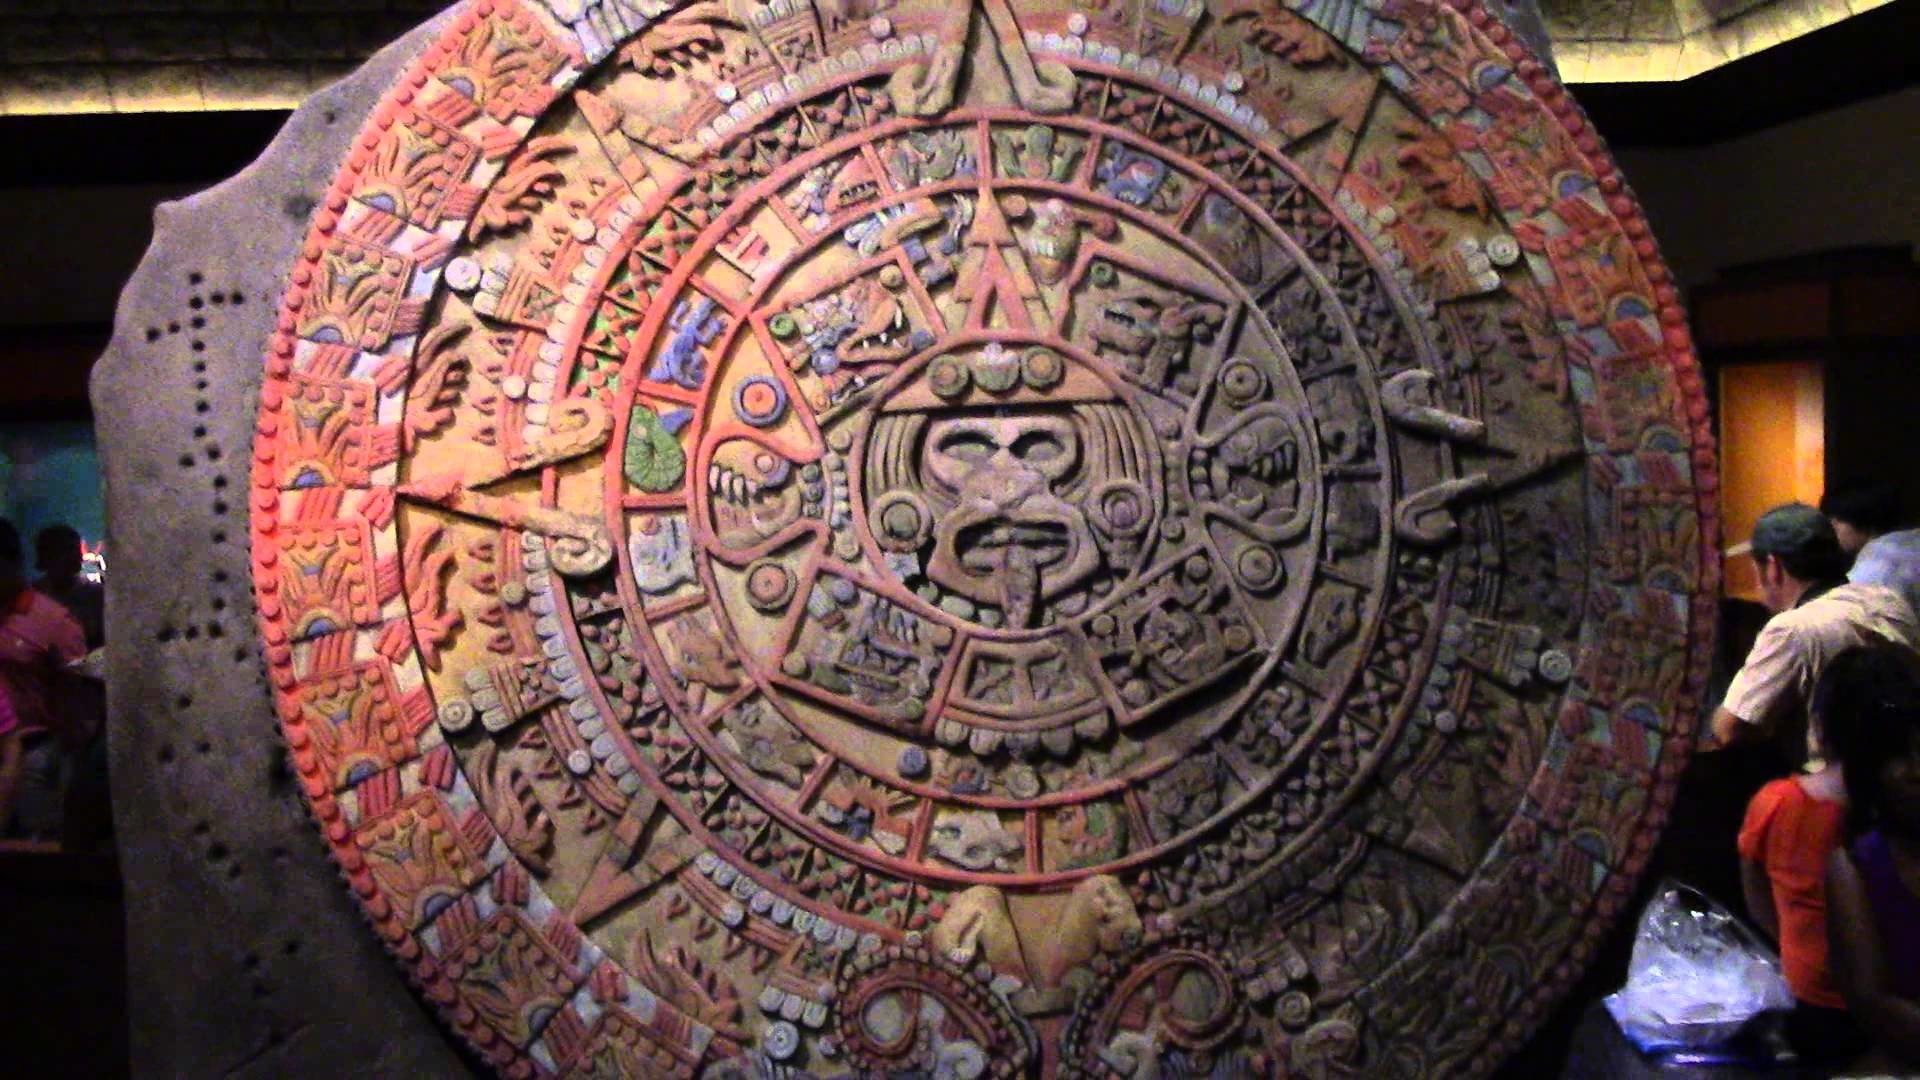 1920x1080 Aztec Calendar - EPCOT Mexico Pavilion - Cool Color Fade Effect - Walt  Disney World